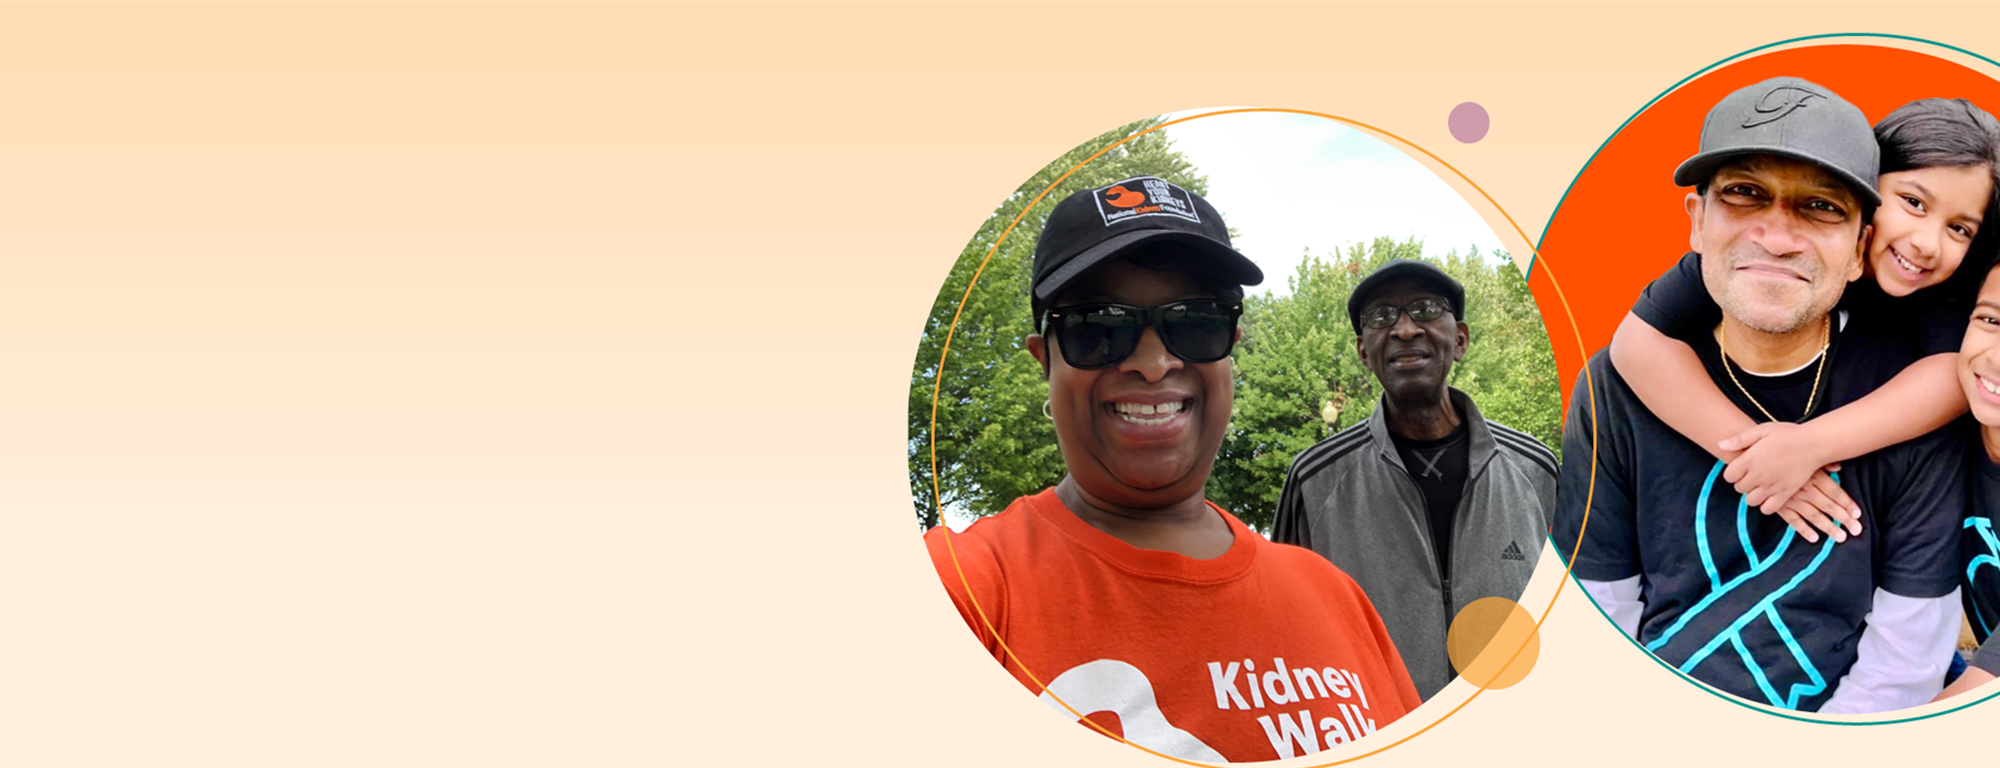 2021 Kidney Walk at the Detroit Zoo